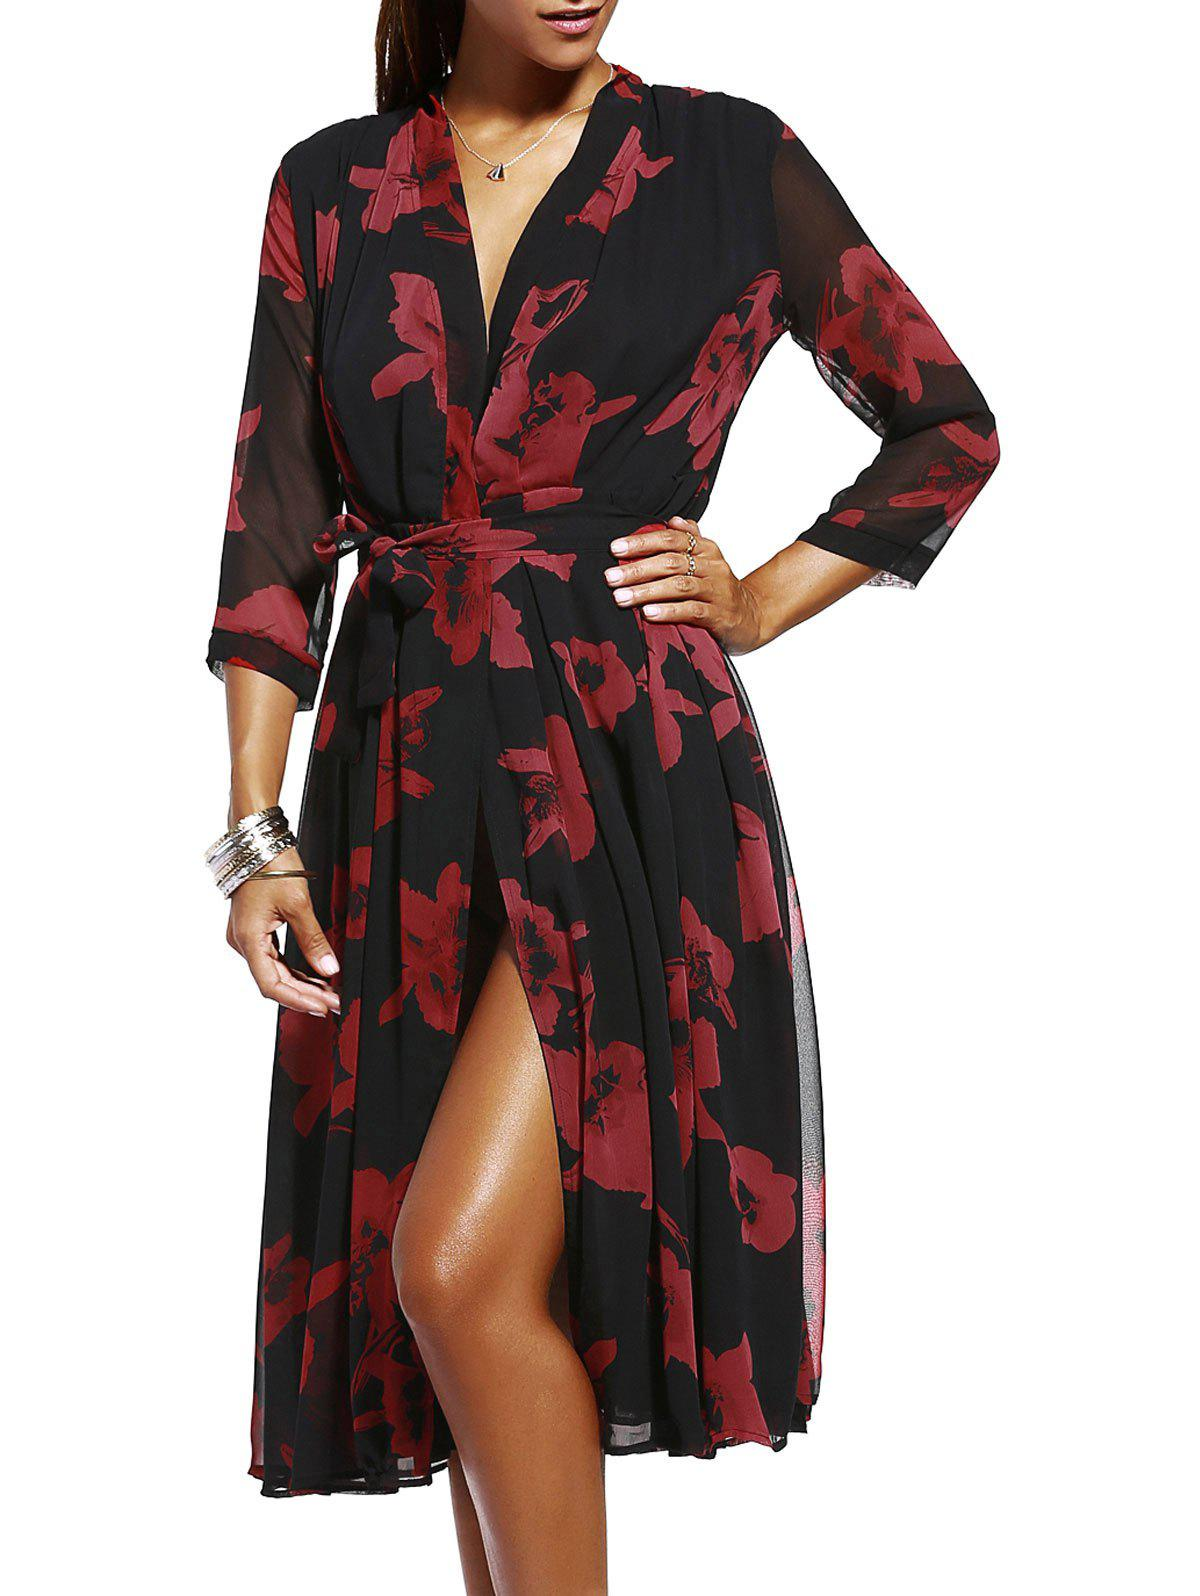 Floral Tie-Front Kimono Dress - RED ONE SIZE(FIT SIZE XS TO M)